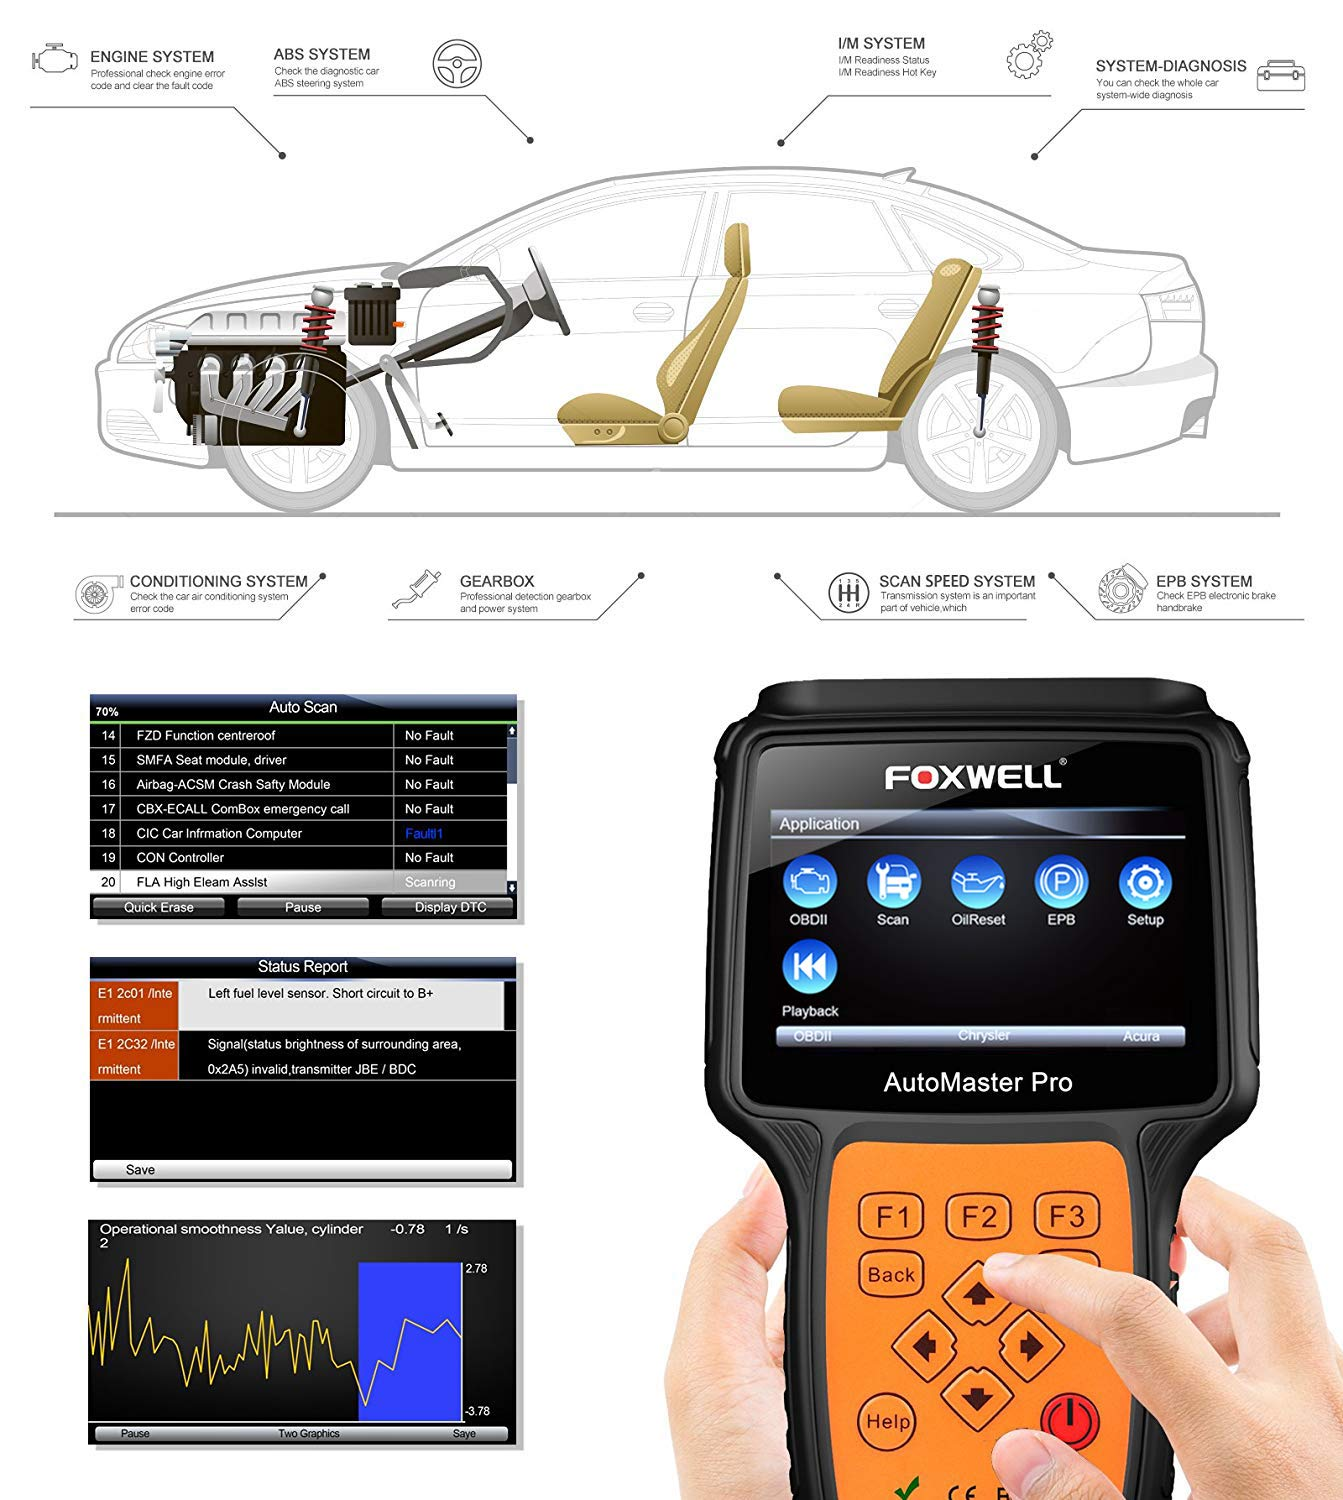 Foxwell Nt624 Pro Professional Automotive Obd2 Scanner Onebutton 2 Way Remote Start Kit Fits Nissan And Infiniti Intellikey Obdii Code Reader Car All Systems Diagnostic Scan Tool With Abs Oil Light Reset Epb Service Functions Can Obd Ii Eobd Scanners